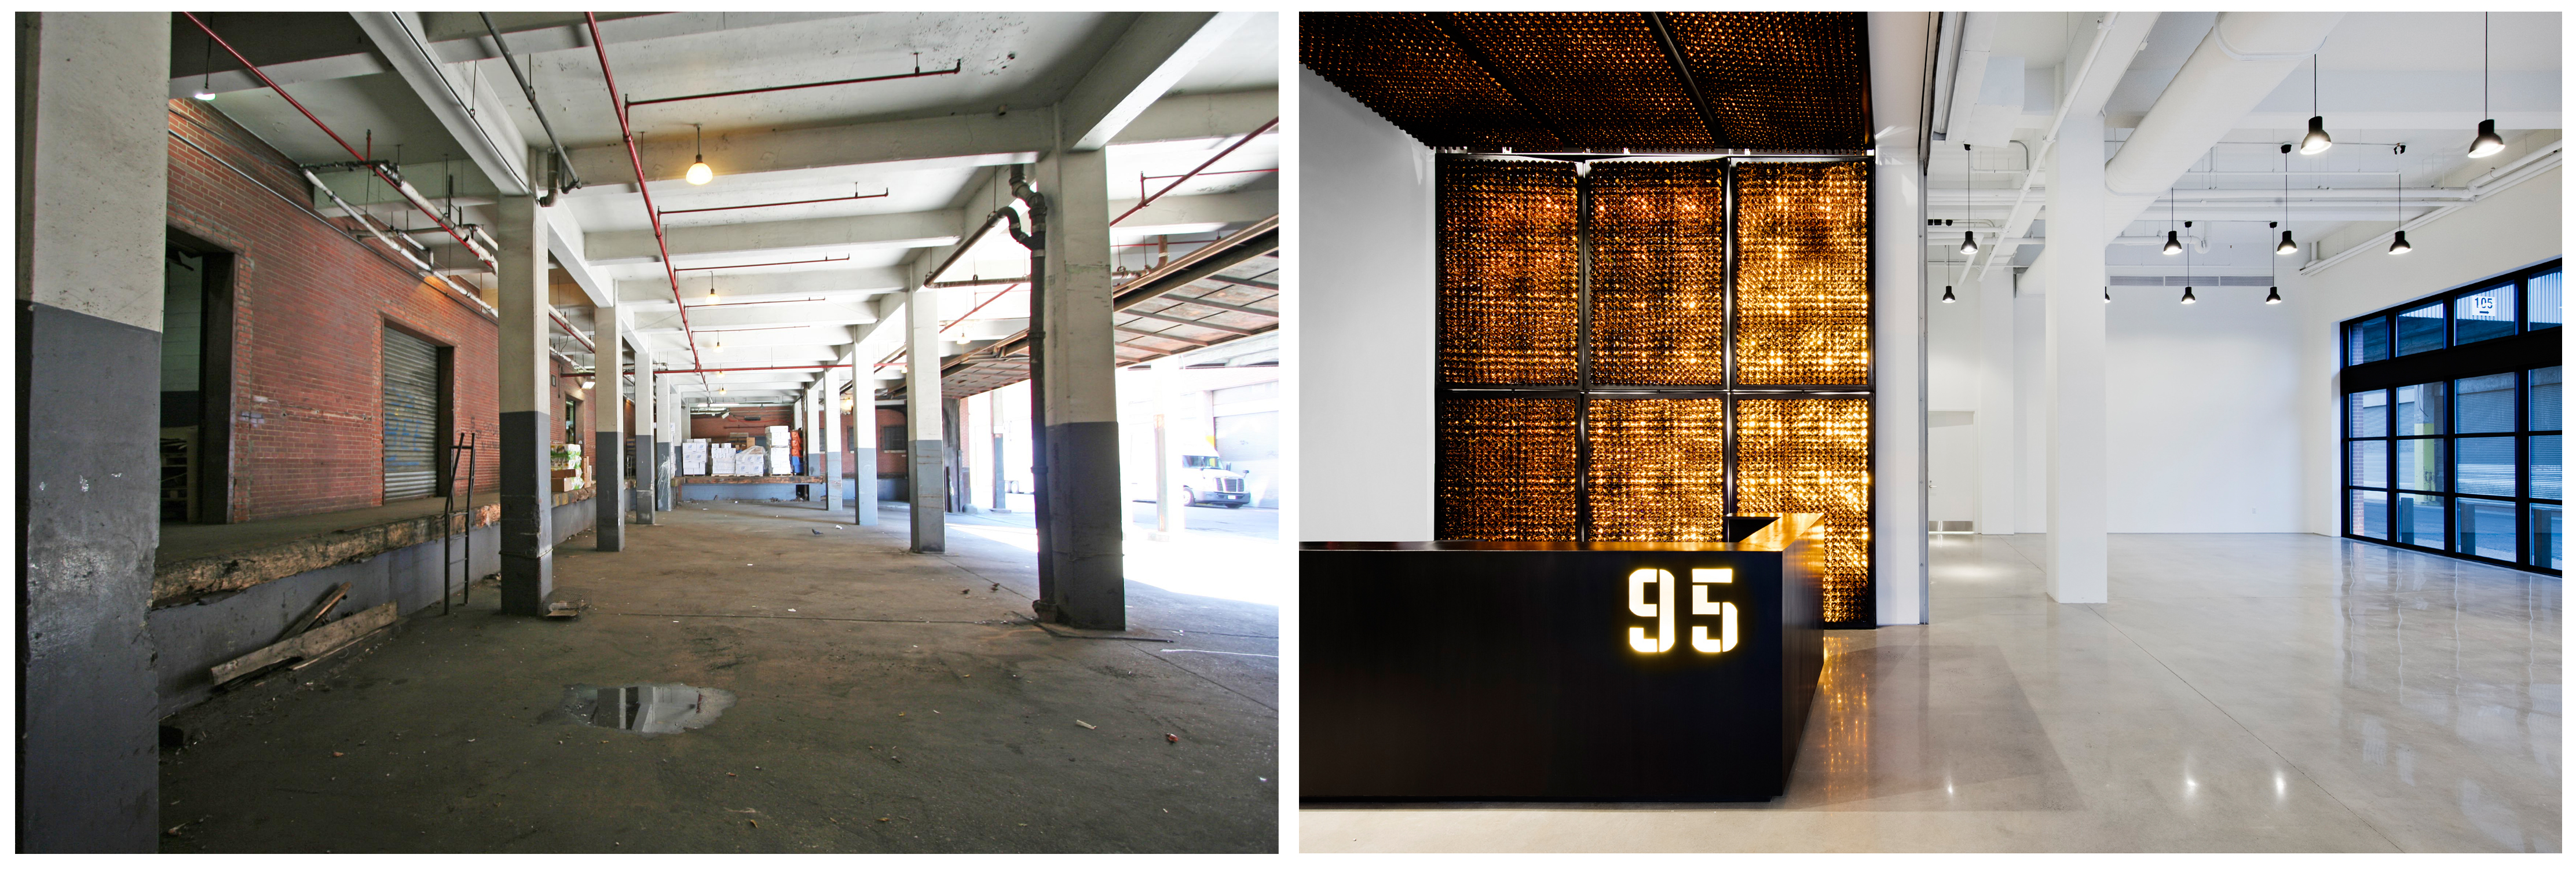 95 Evergreen Avenue, loading dock/lobby, pre-conversion and post-conversion. Photos by Connie Zhou